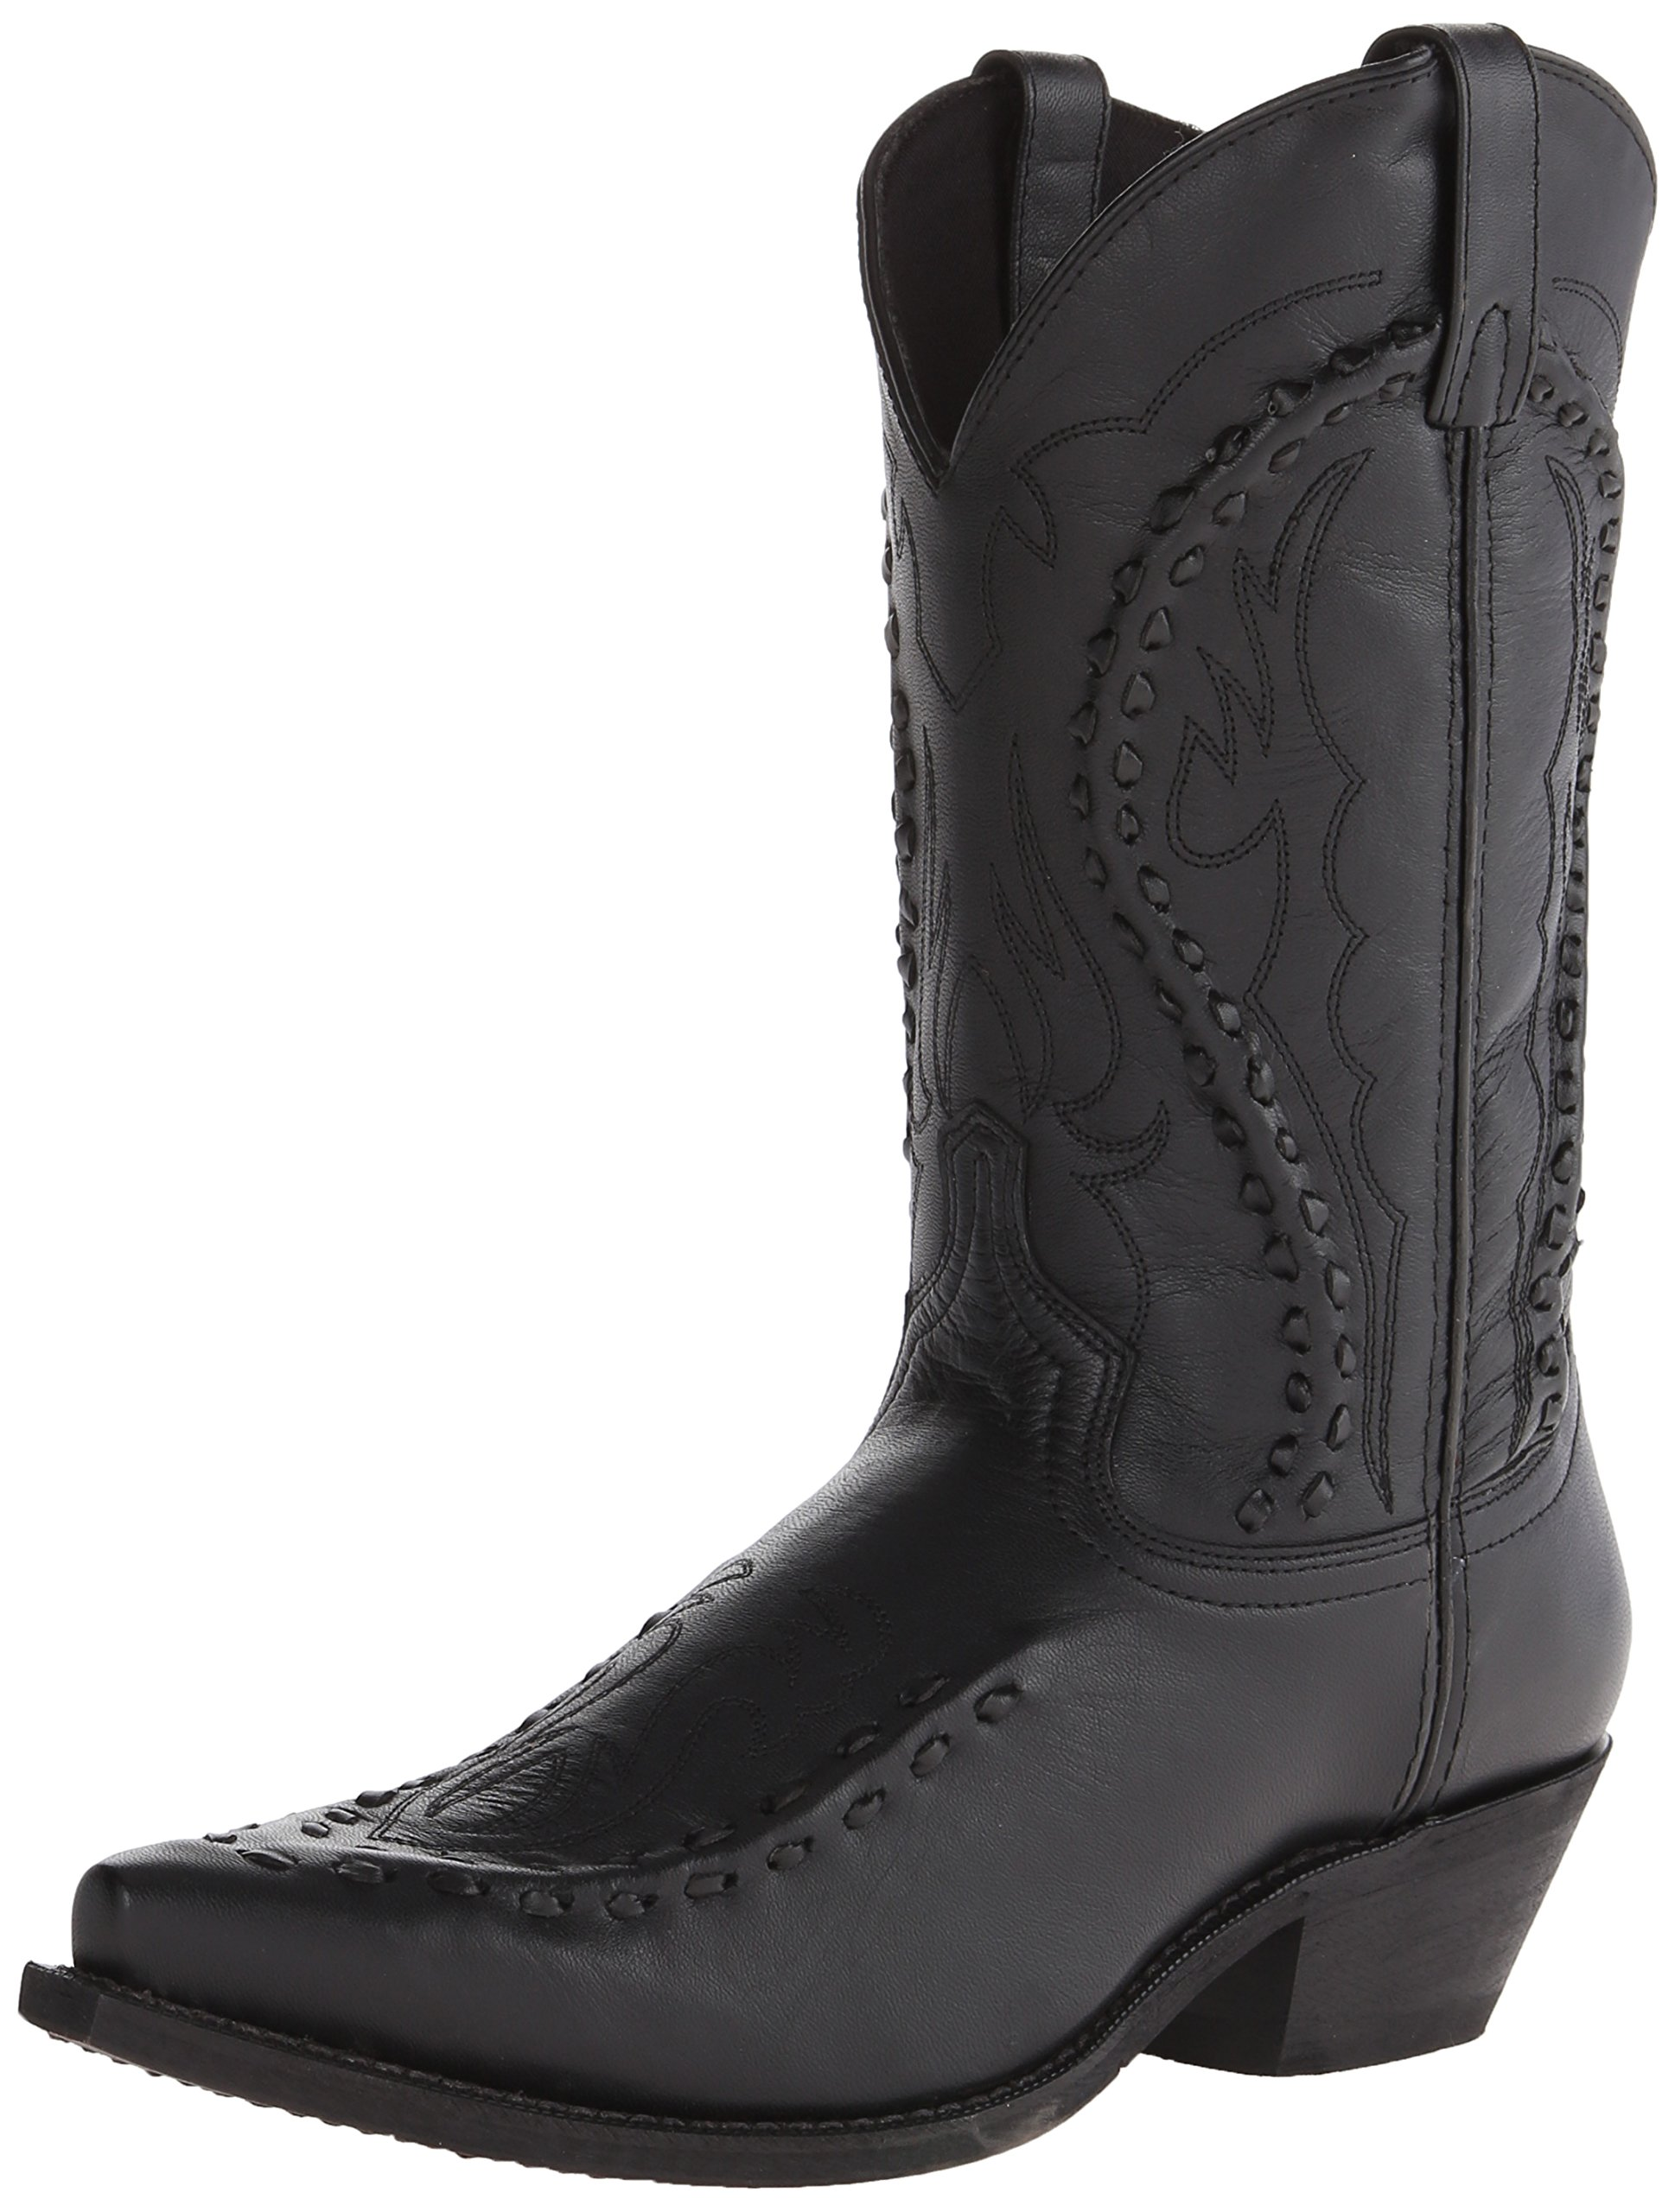 Laredo Men's Laramie Western Boot, Black, 13 D US by Laredo